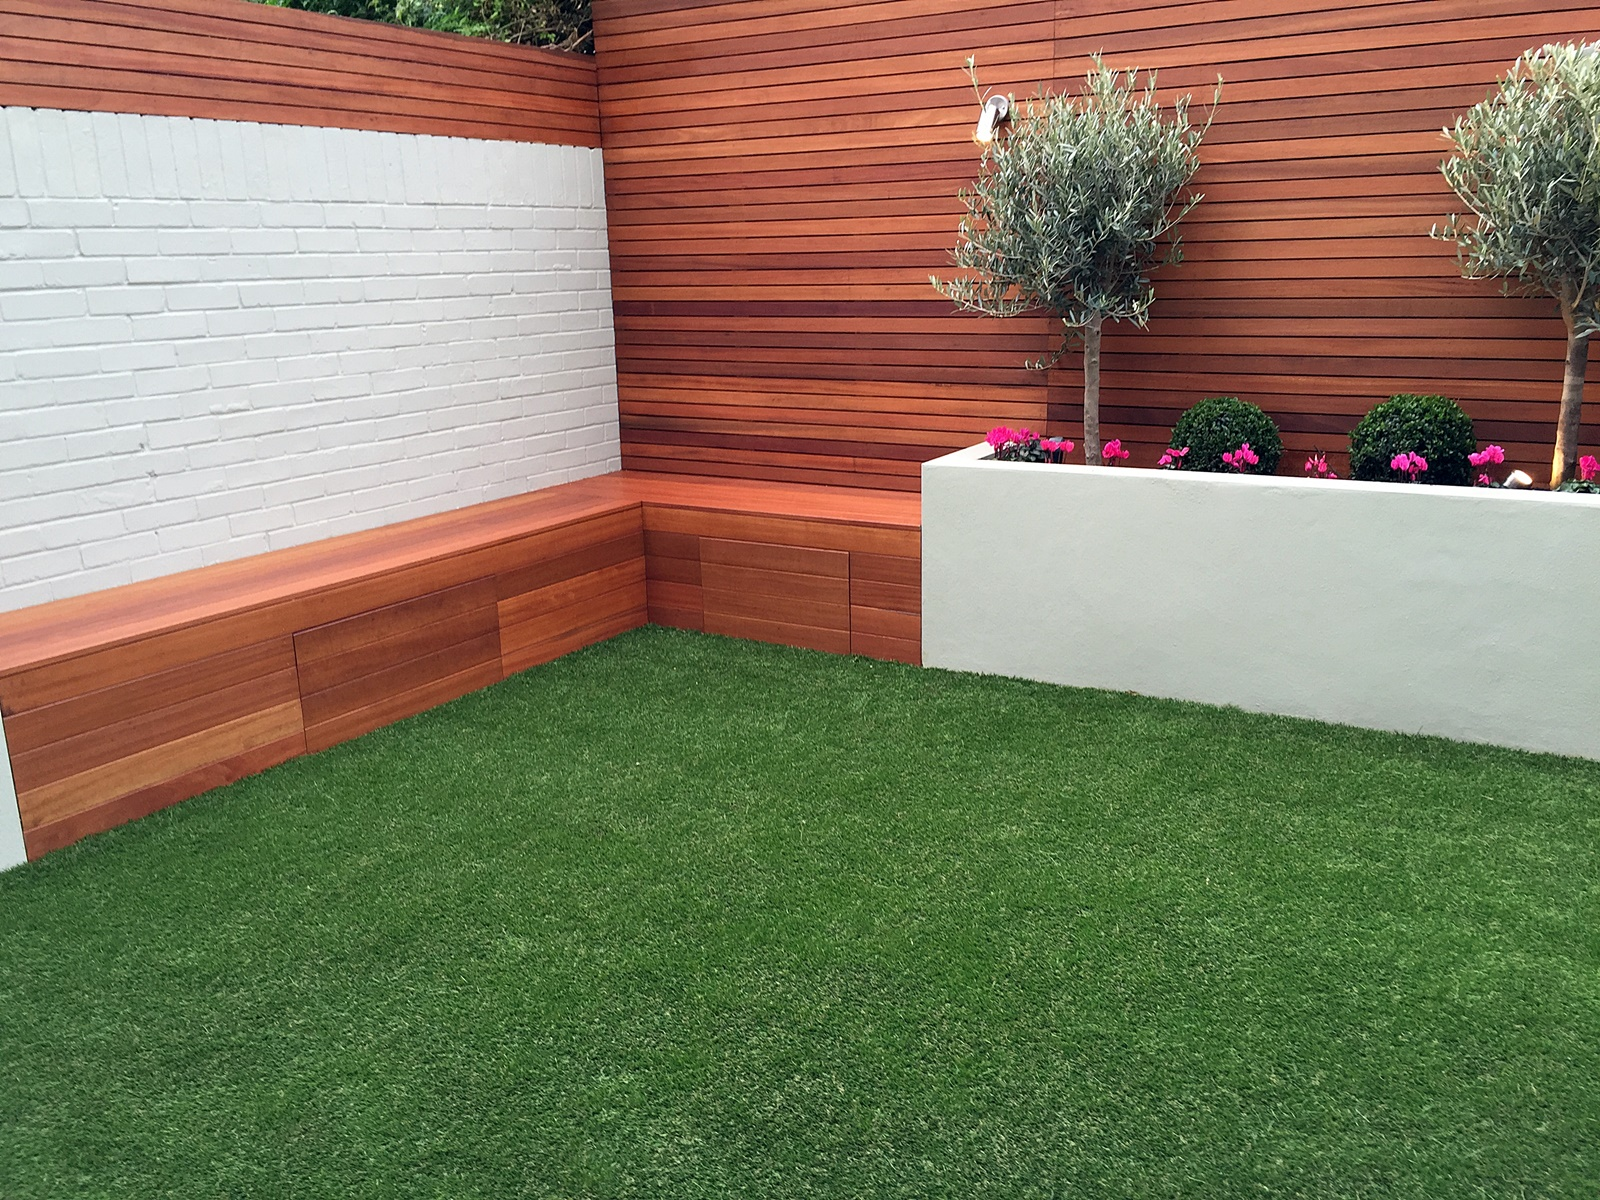 Simple modern court yard garden designer battersea fulham for Simple garden designs for small gardens